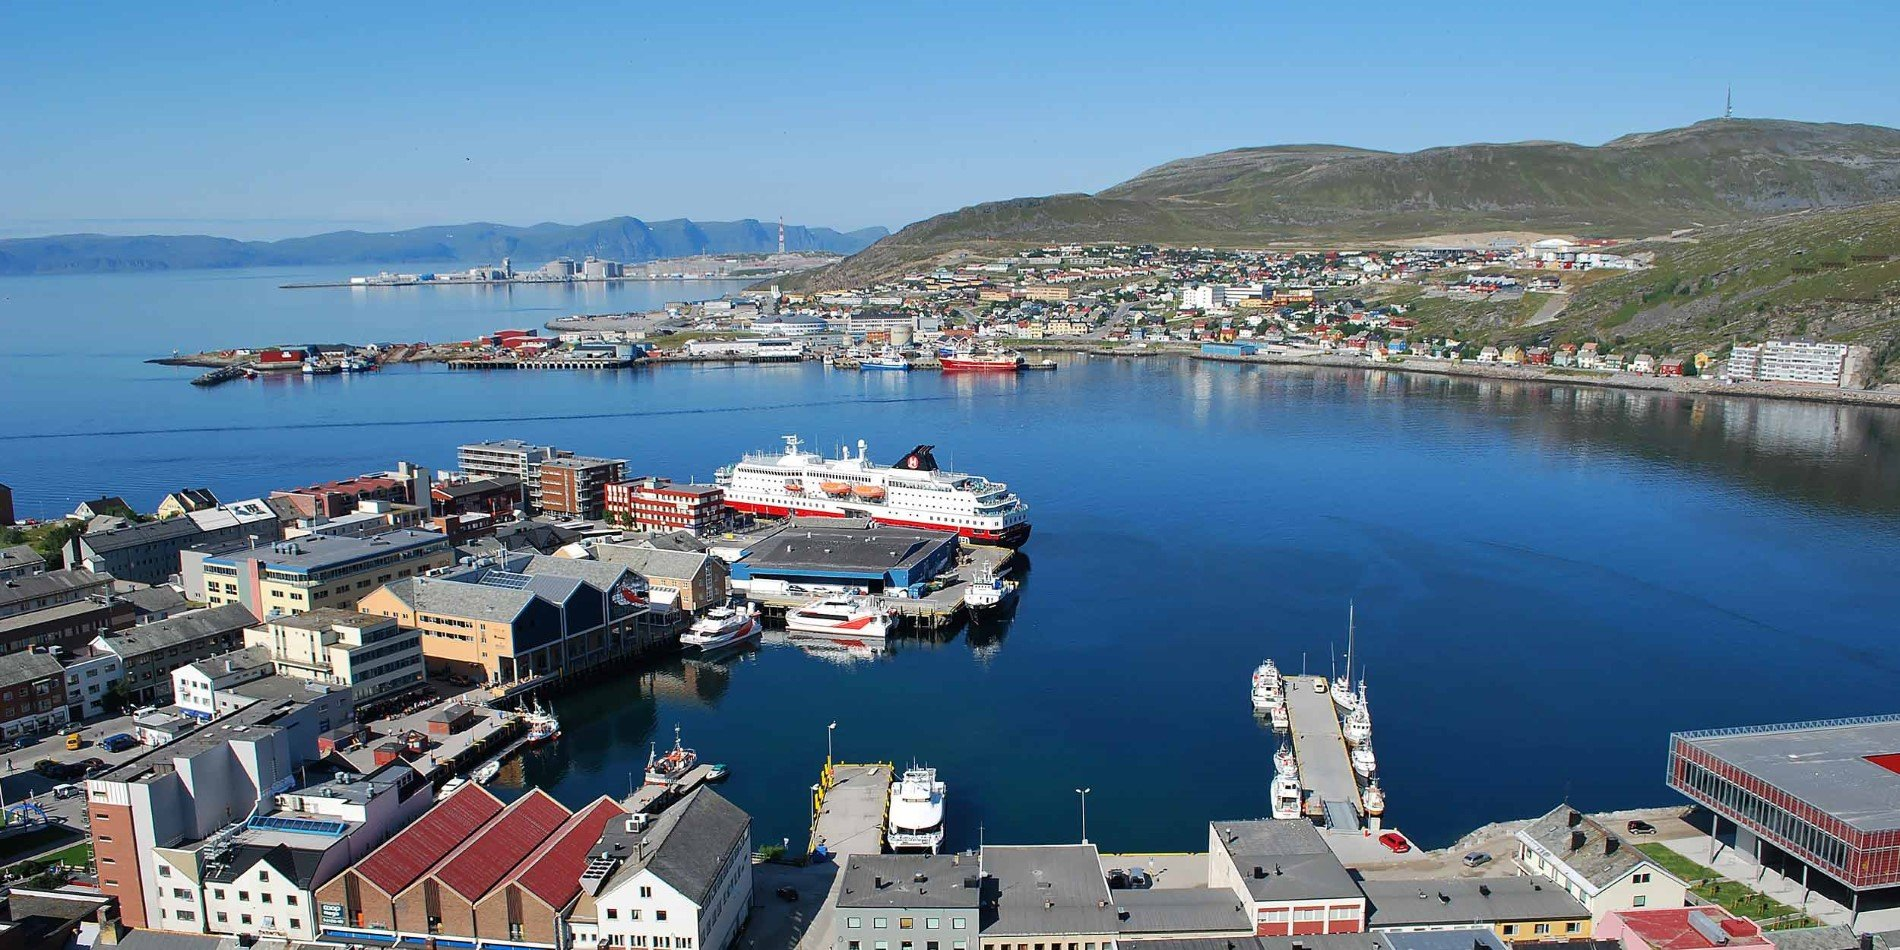 2500x1250_Hammerfest_Town-and-Port_BY_Reinhard-Gerwin_Guest-Image.jpg